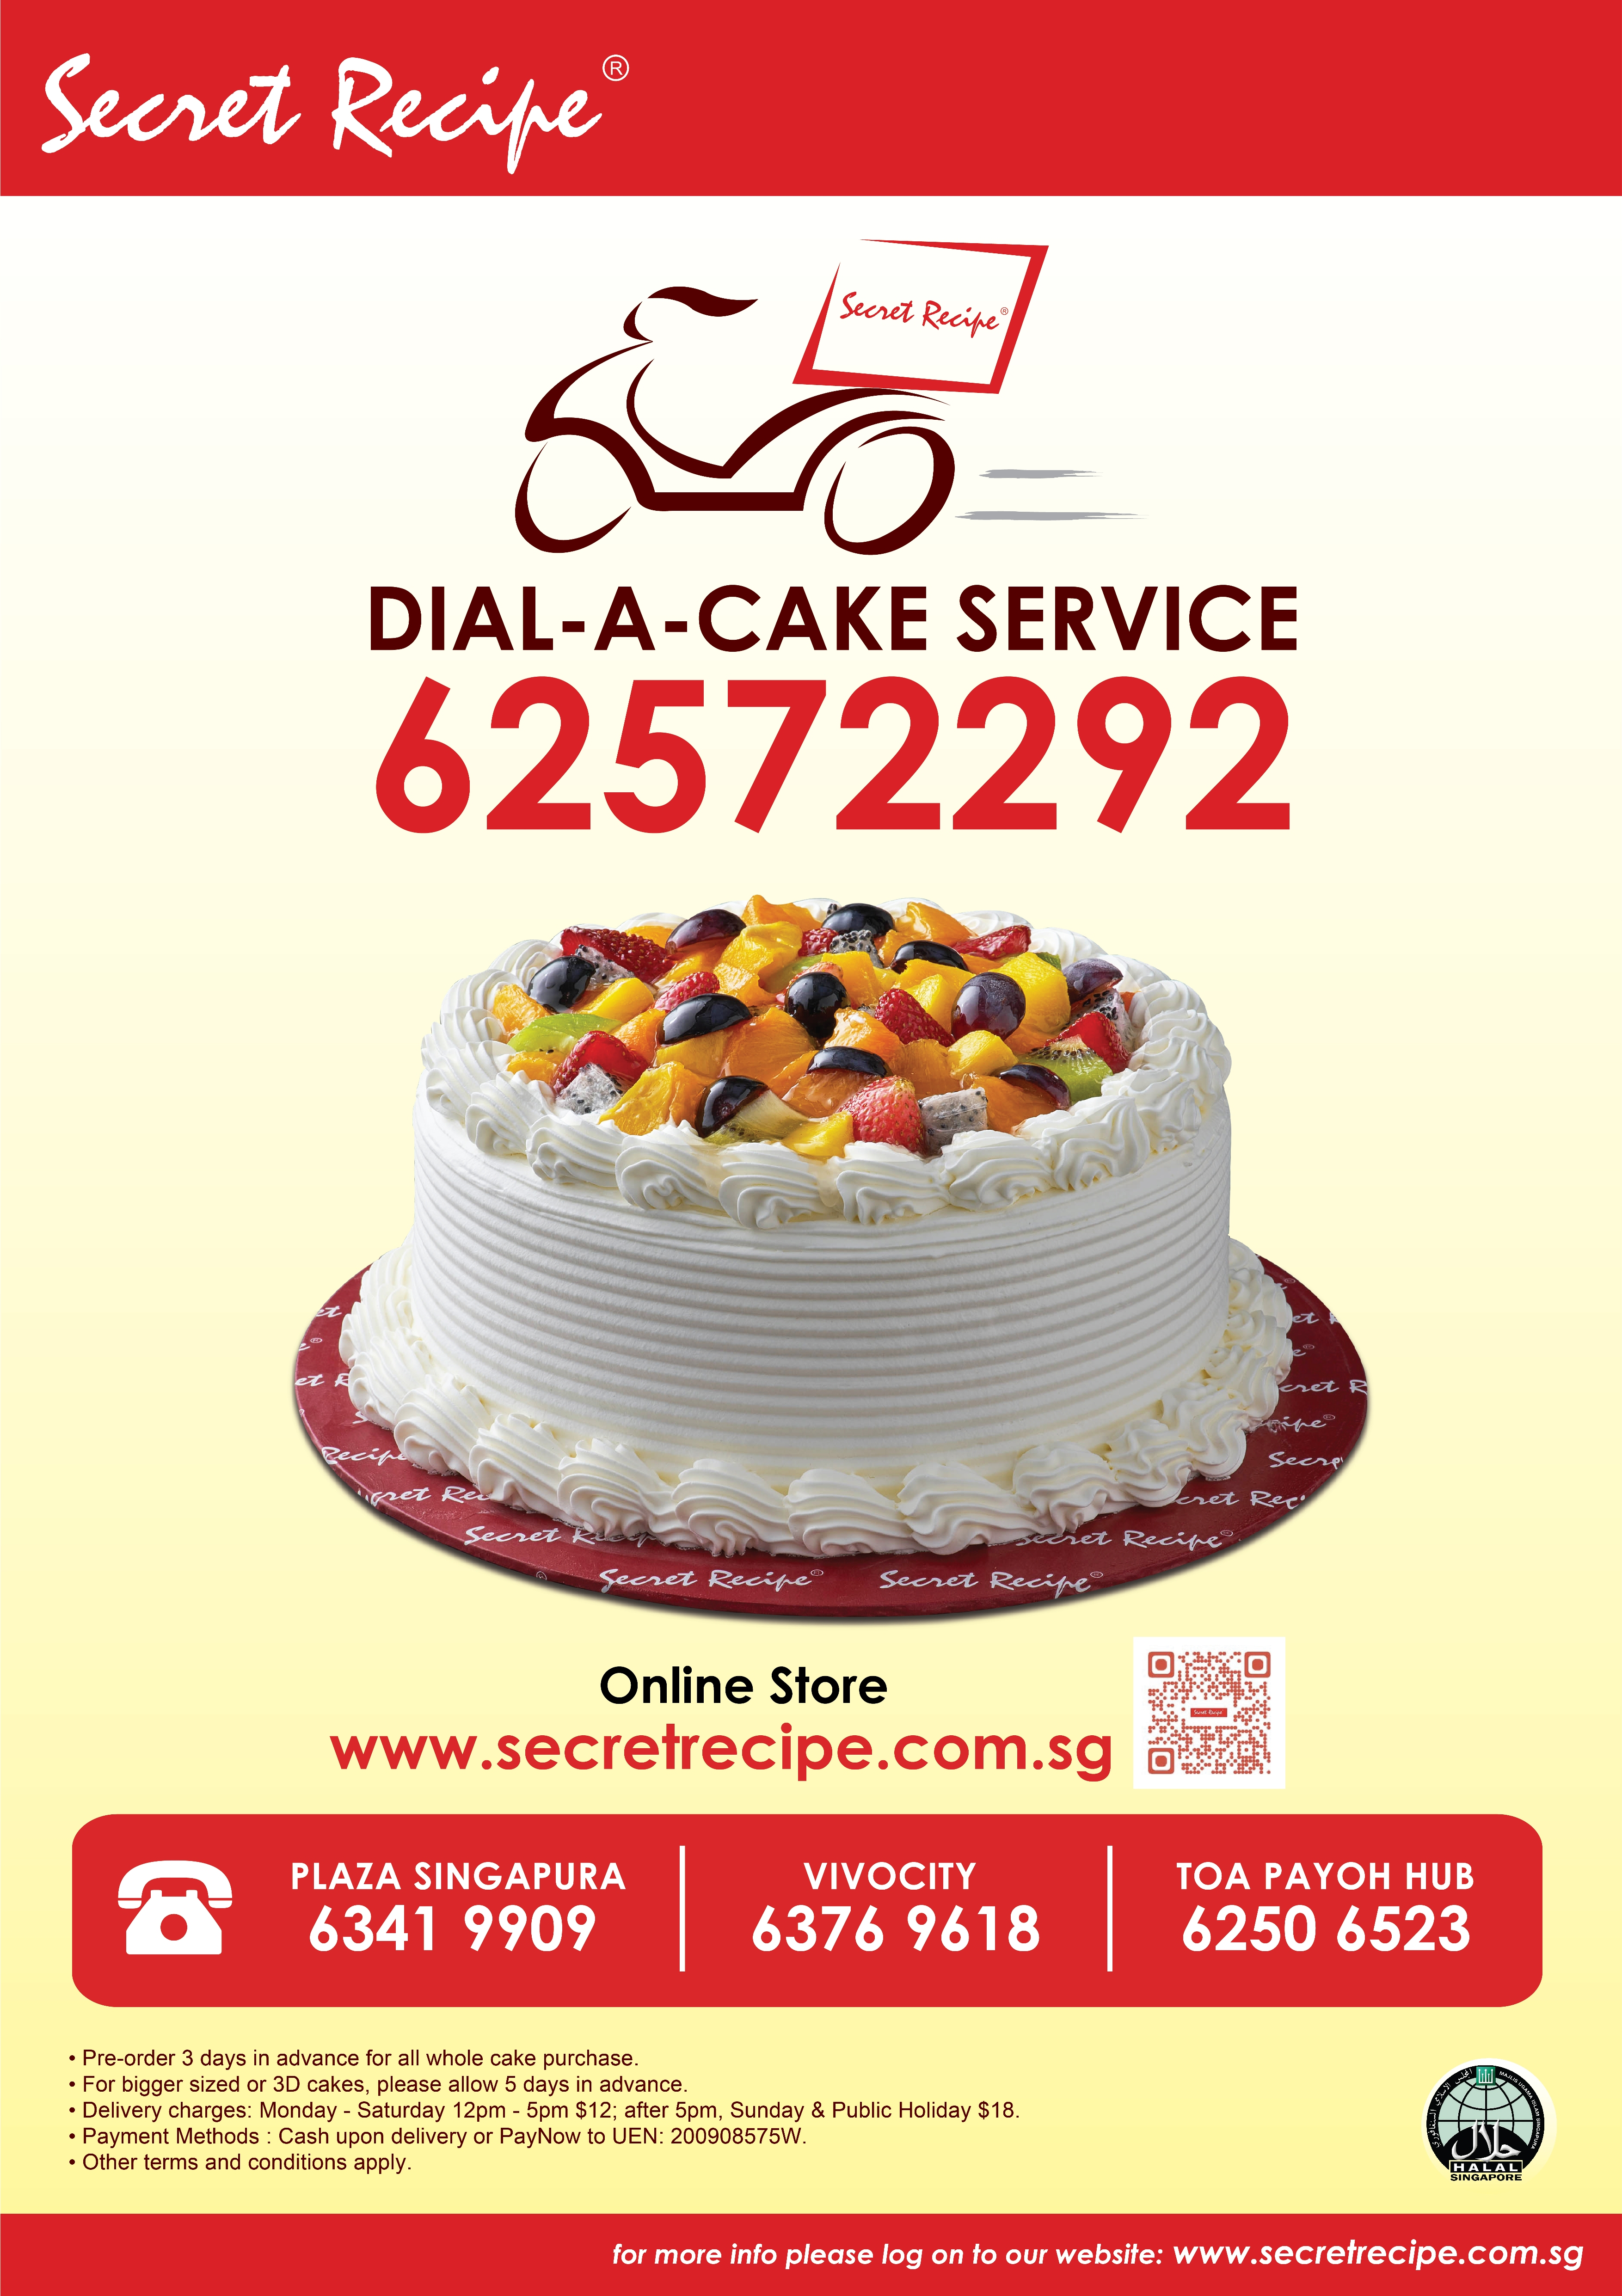 SG - Dial A Cake Service - A1 resized.jpg